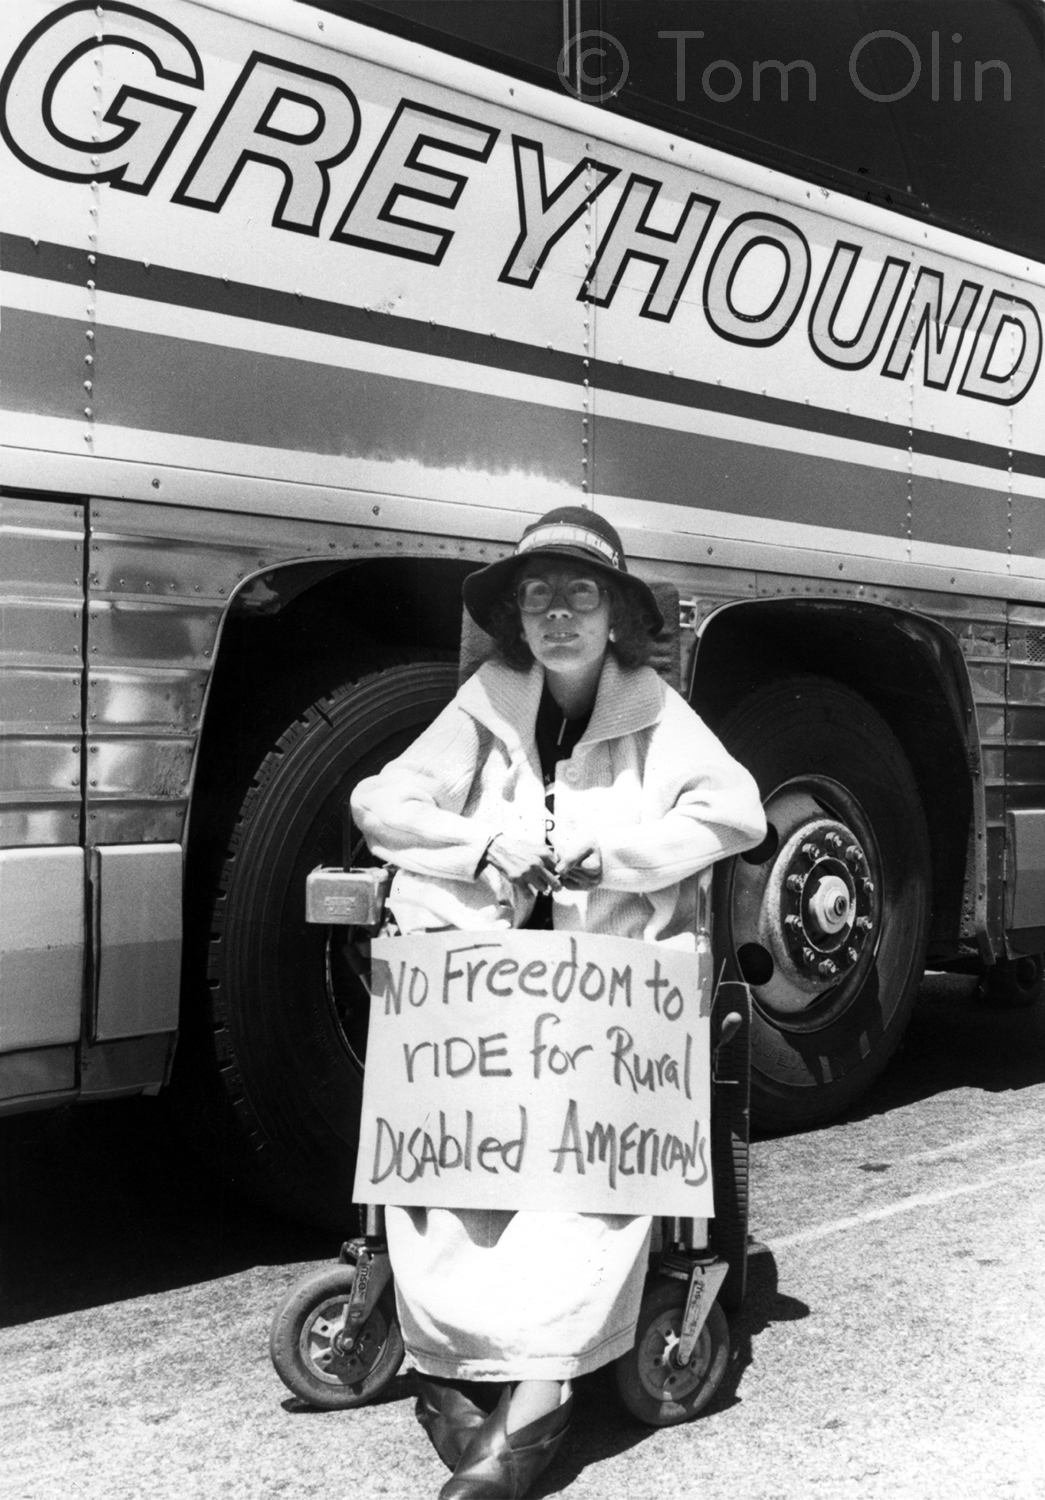 """Black and white photo of person wearing a sun hat and wearing a long coat sits in a power wheelchair with a sign that reads """"No freedom to ride for rural disabled americans."""""""